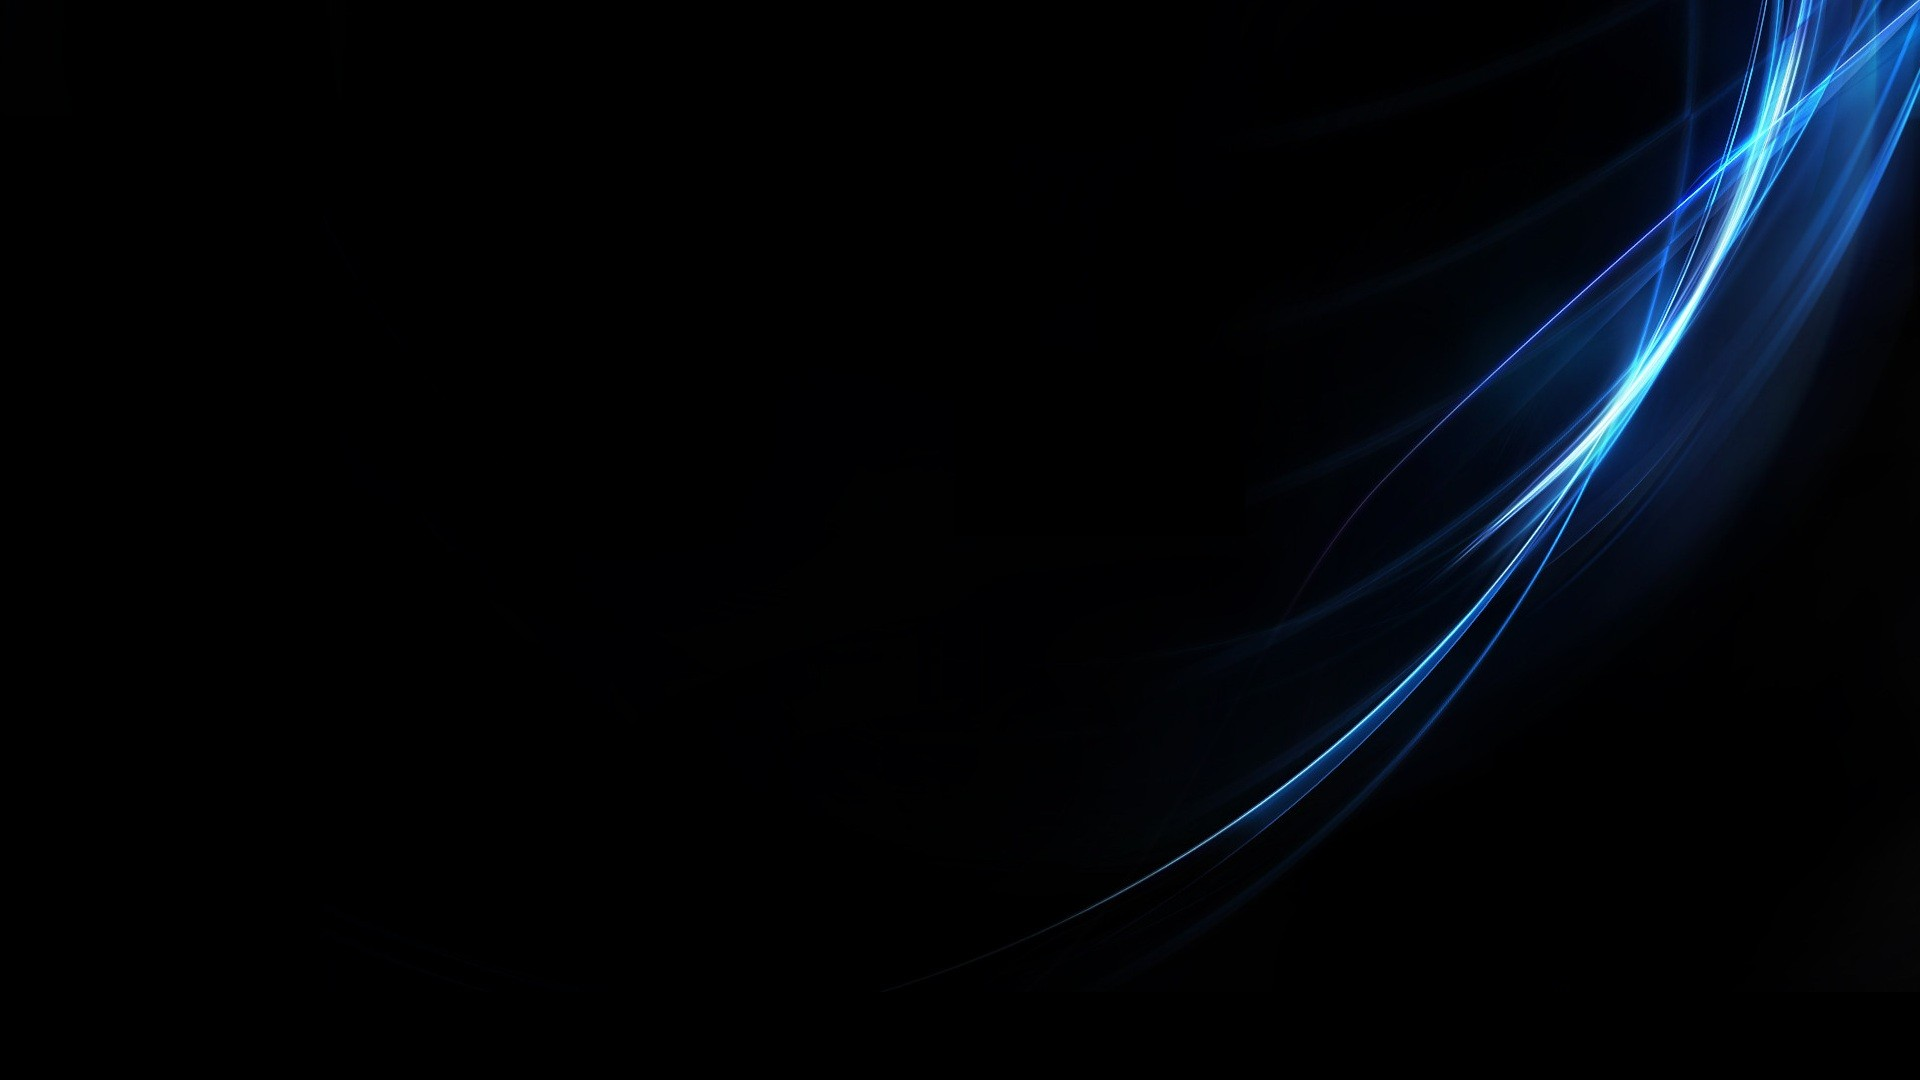 Dark Blue Background Images Wallpapertag: Black And Blue Background ·① Download Free Beautiful Full